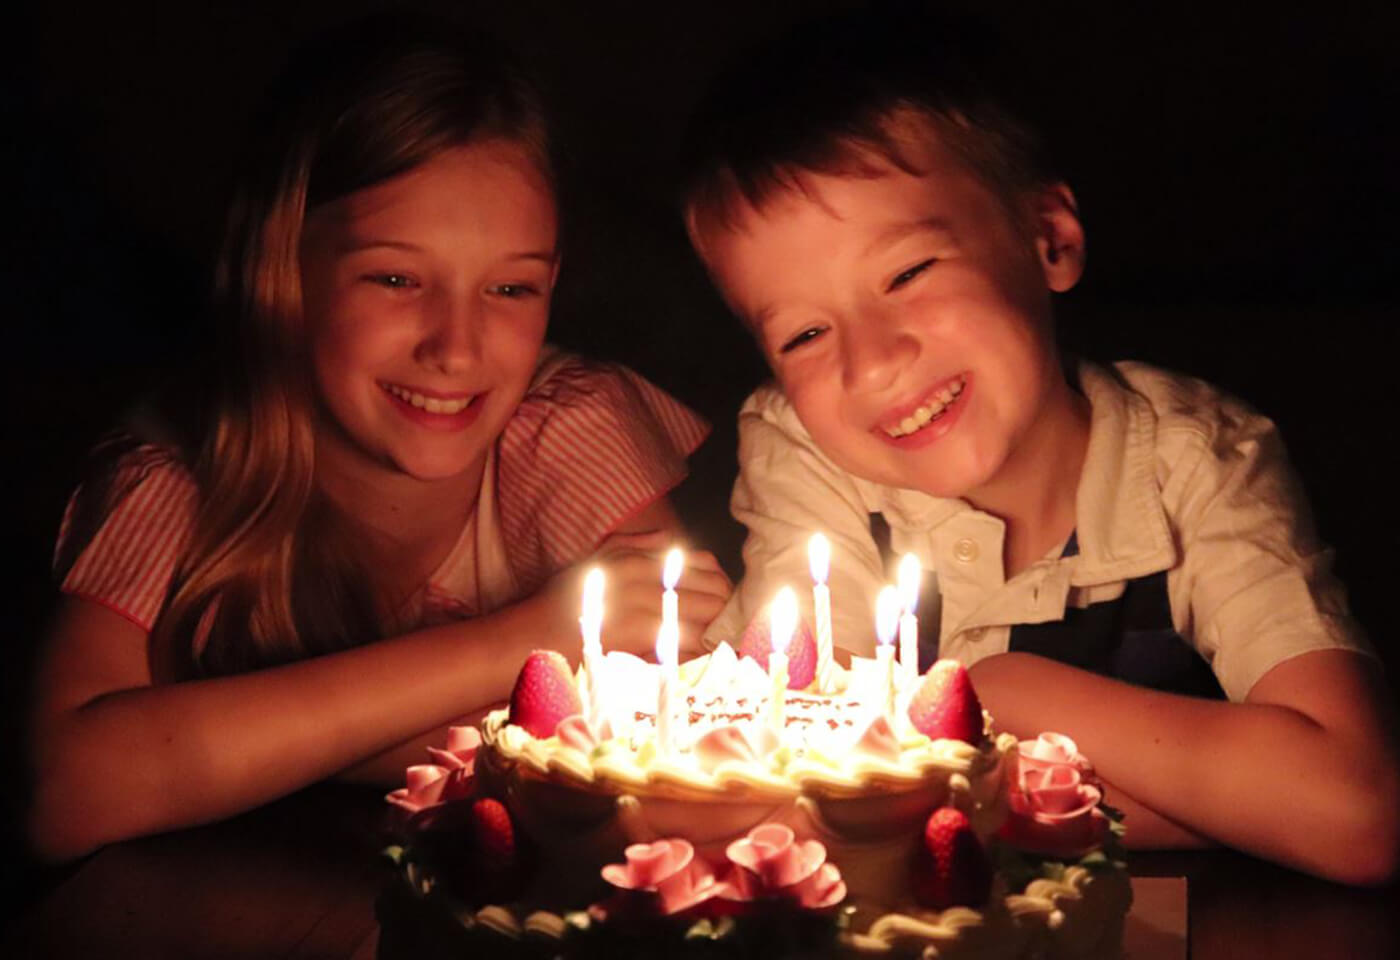 Low light image of two kids with candles on birthday cake